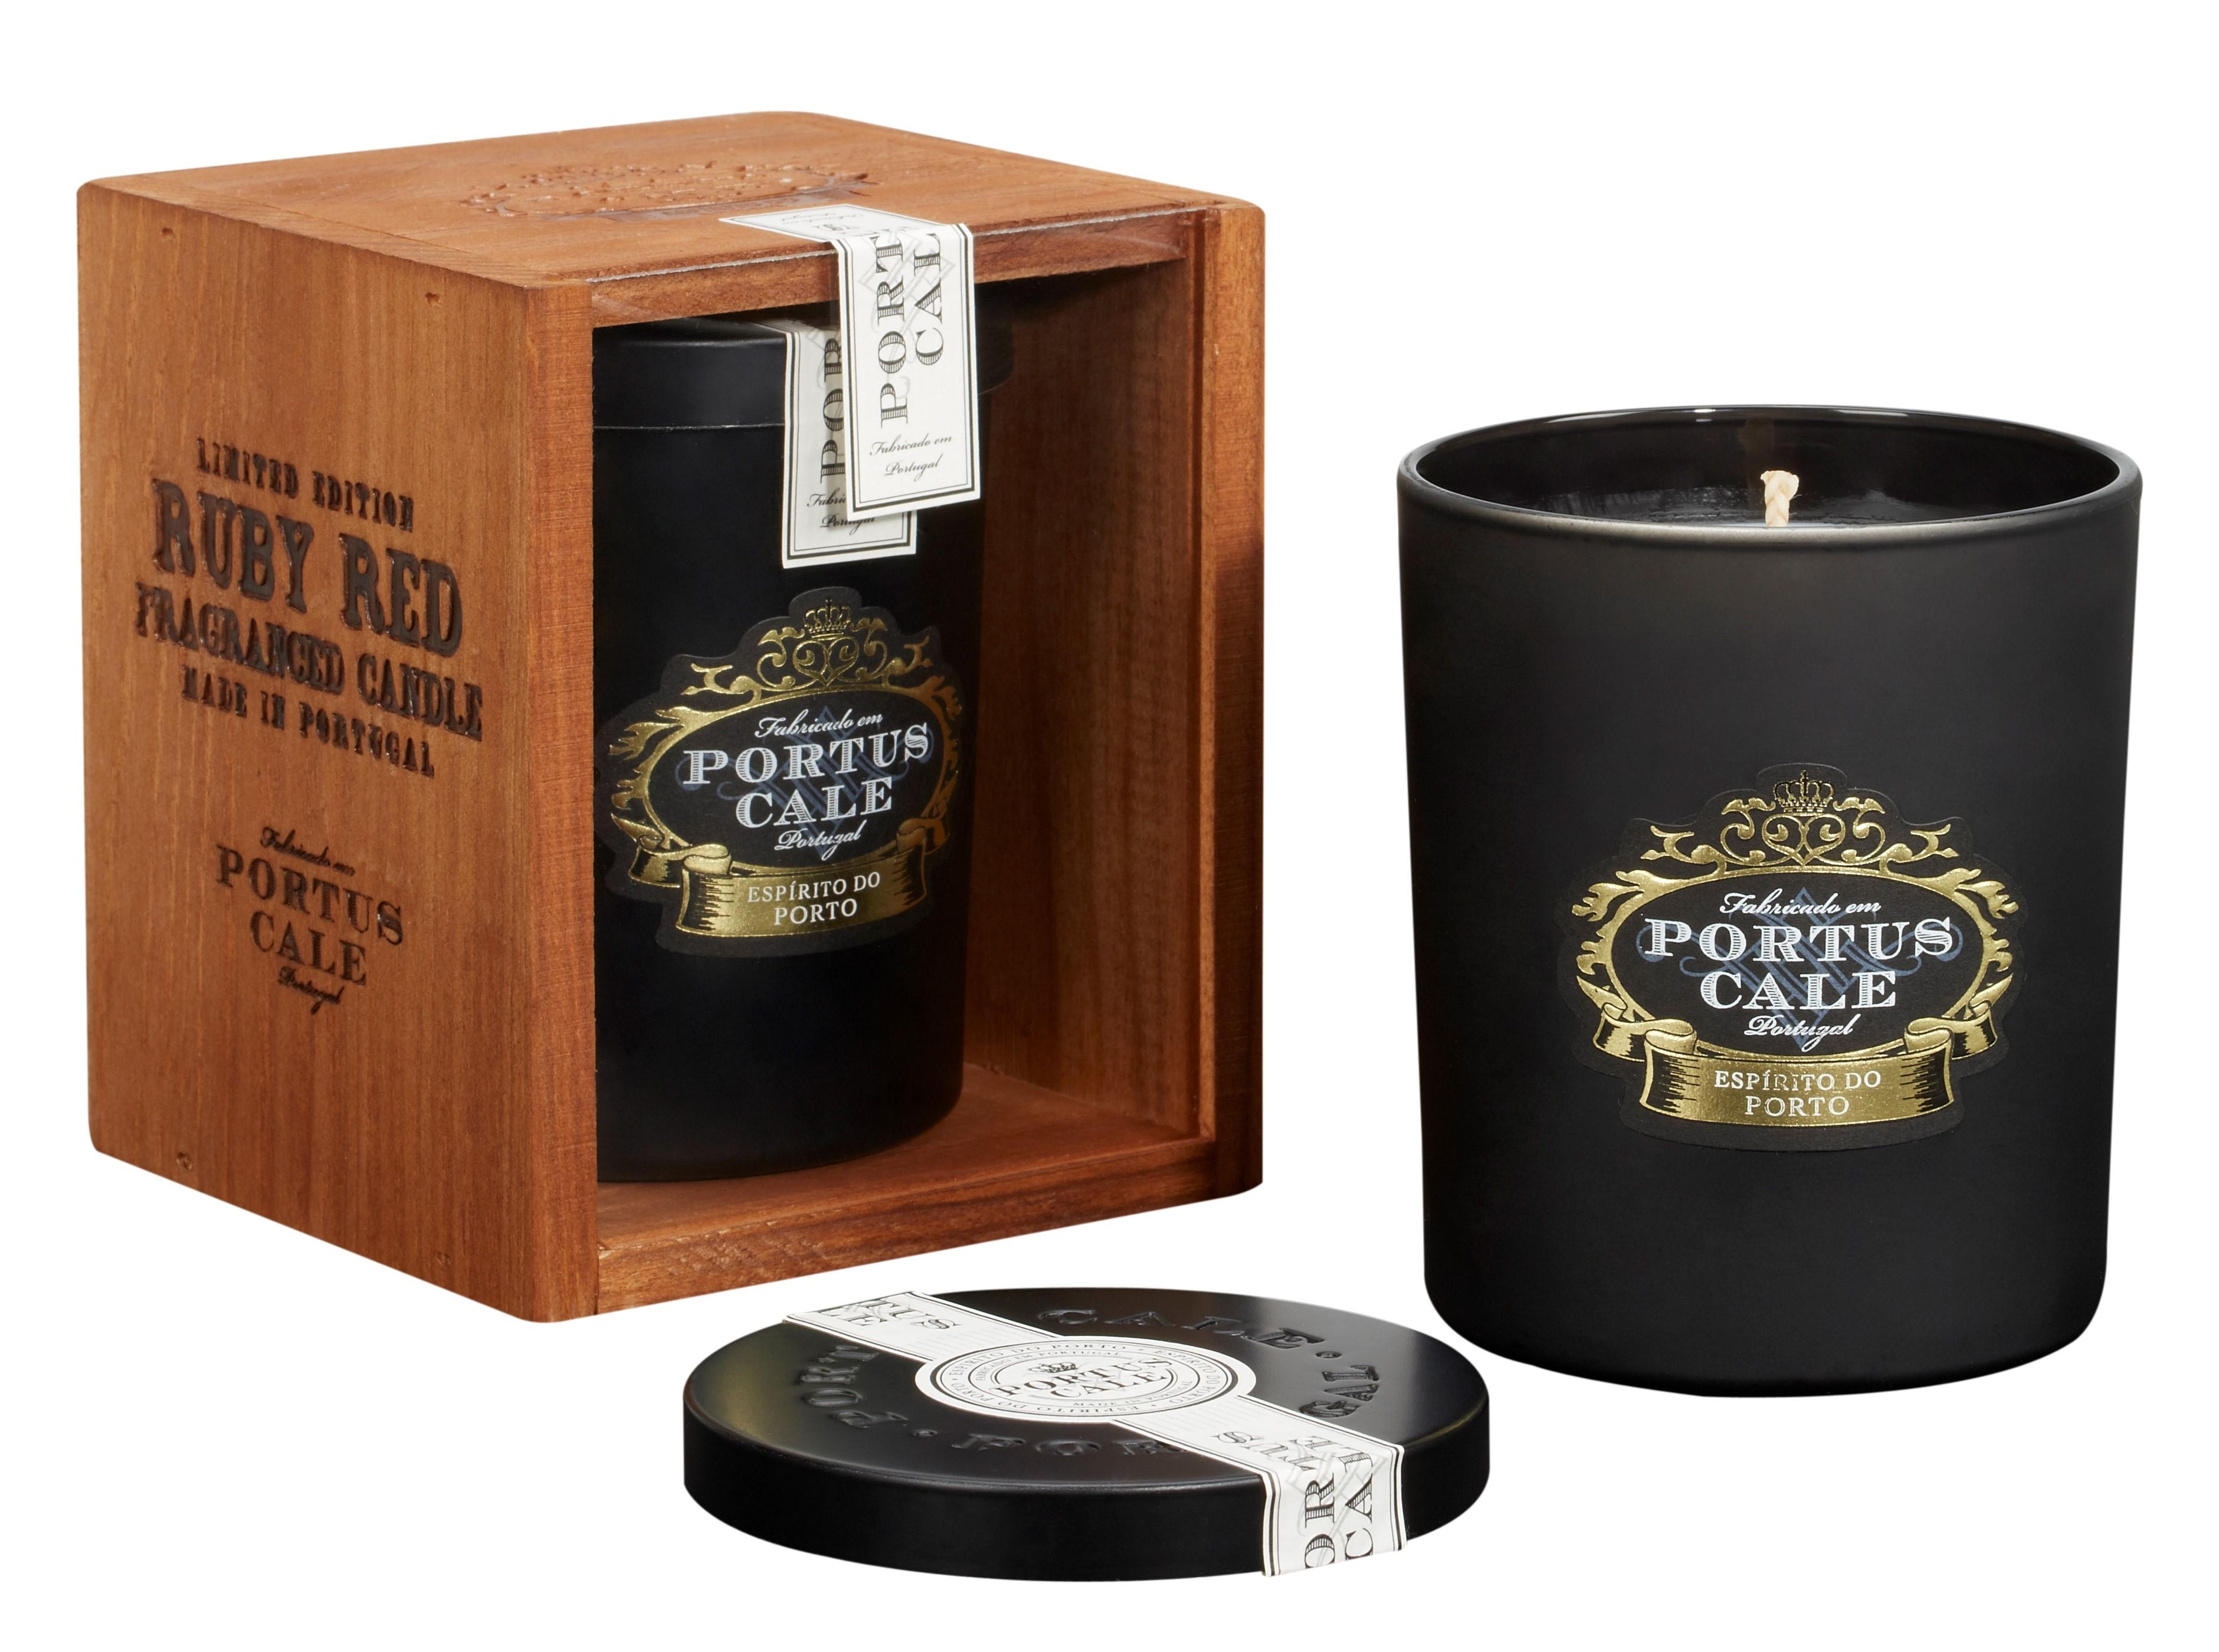 Portus Cale - Ruby Red Candle